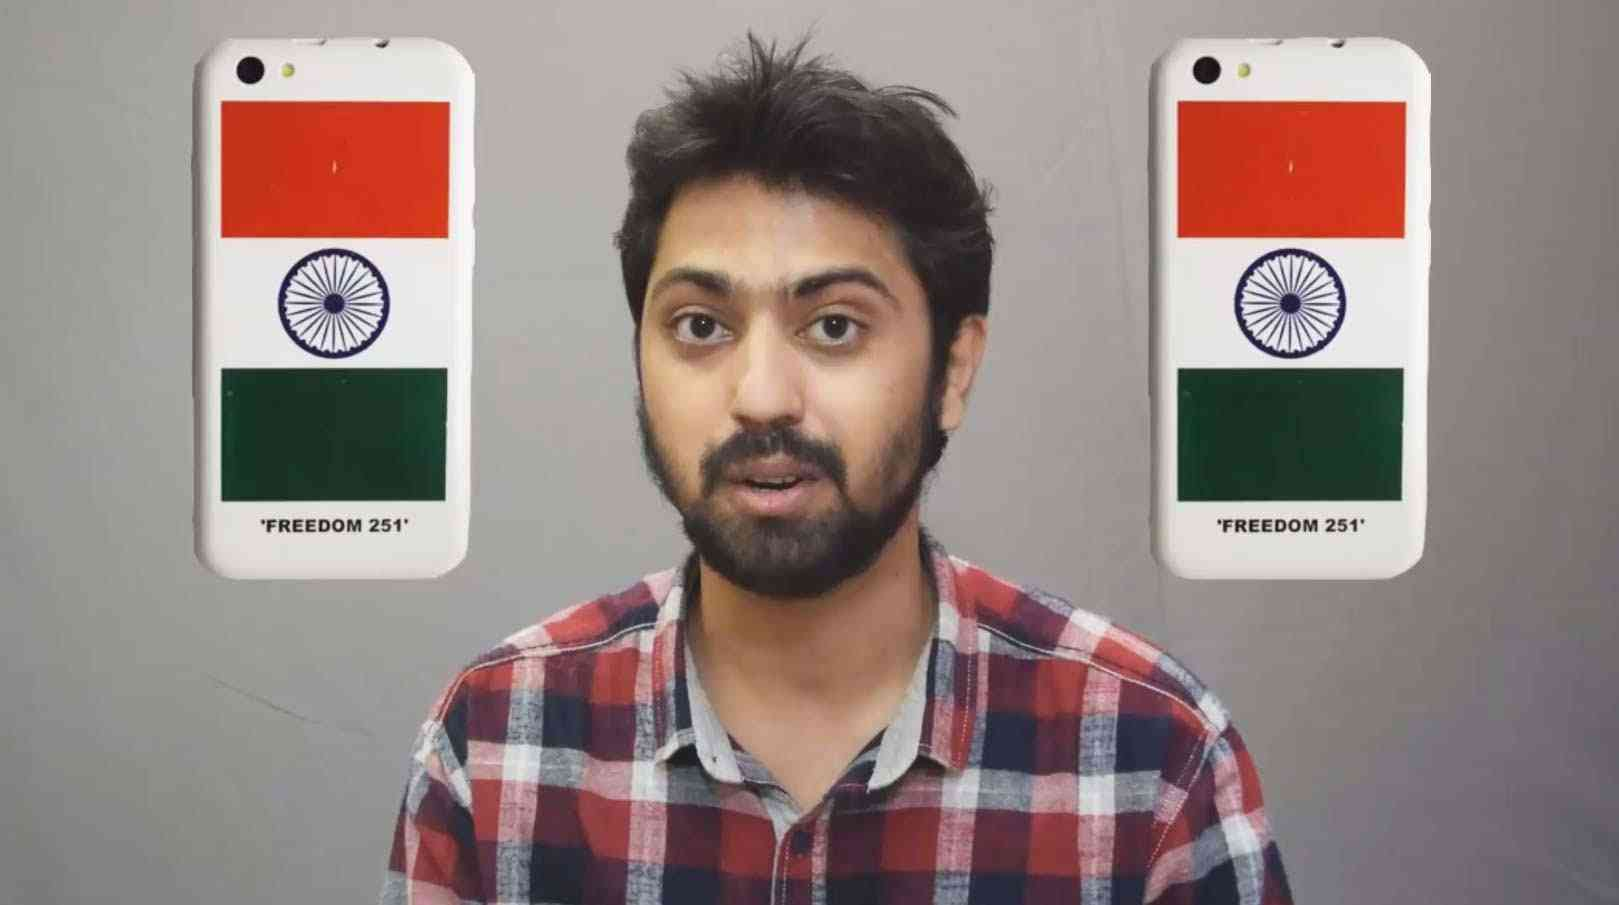 Freedom 251: The controversy that refuses to die